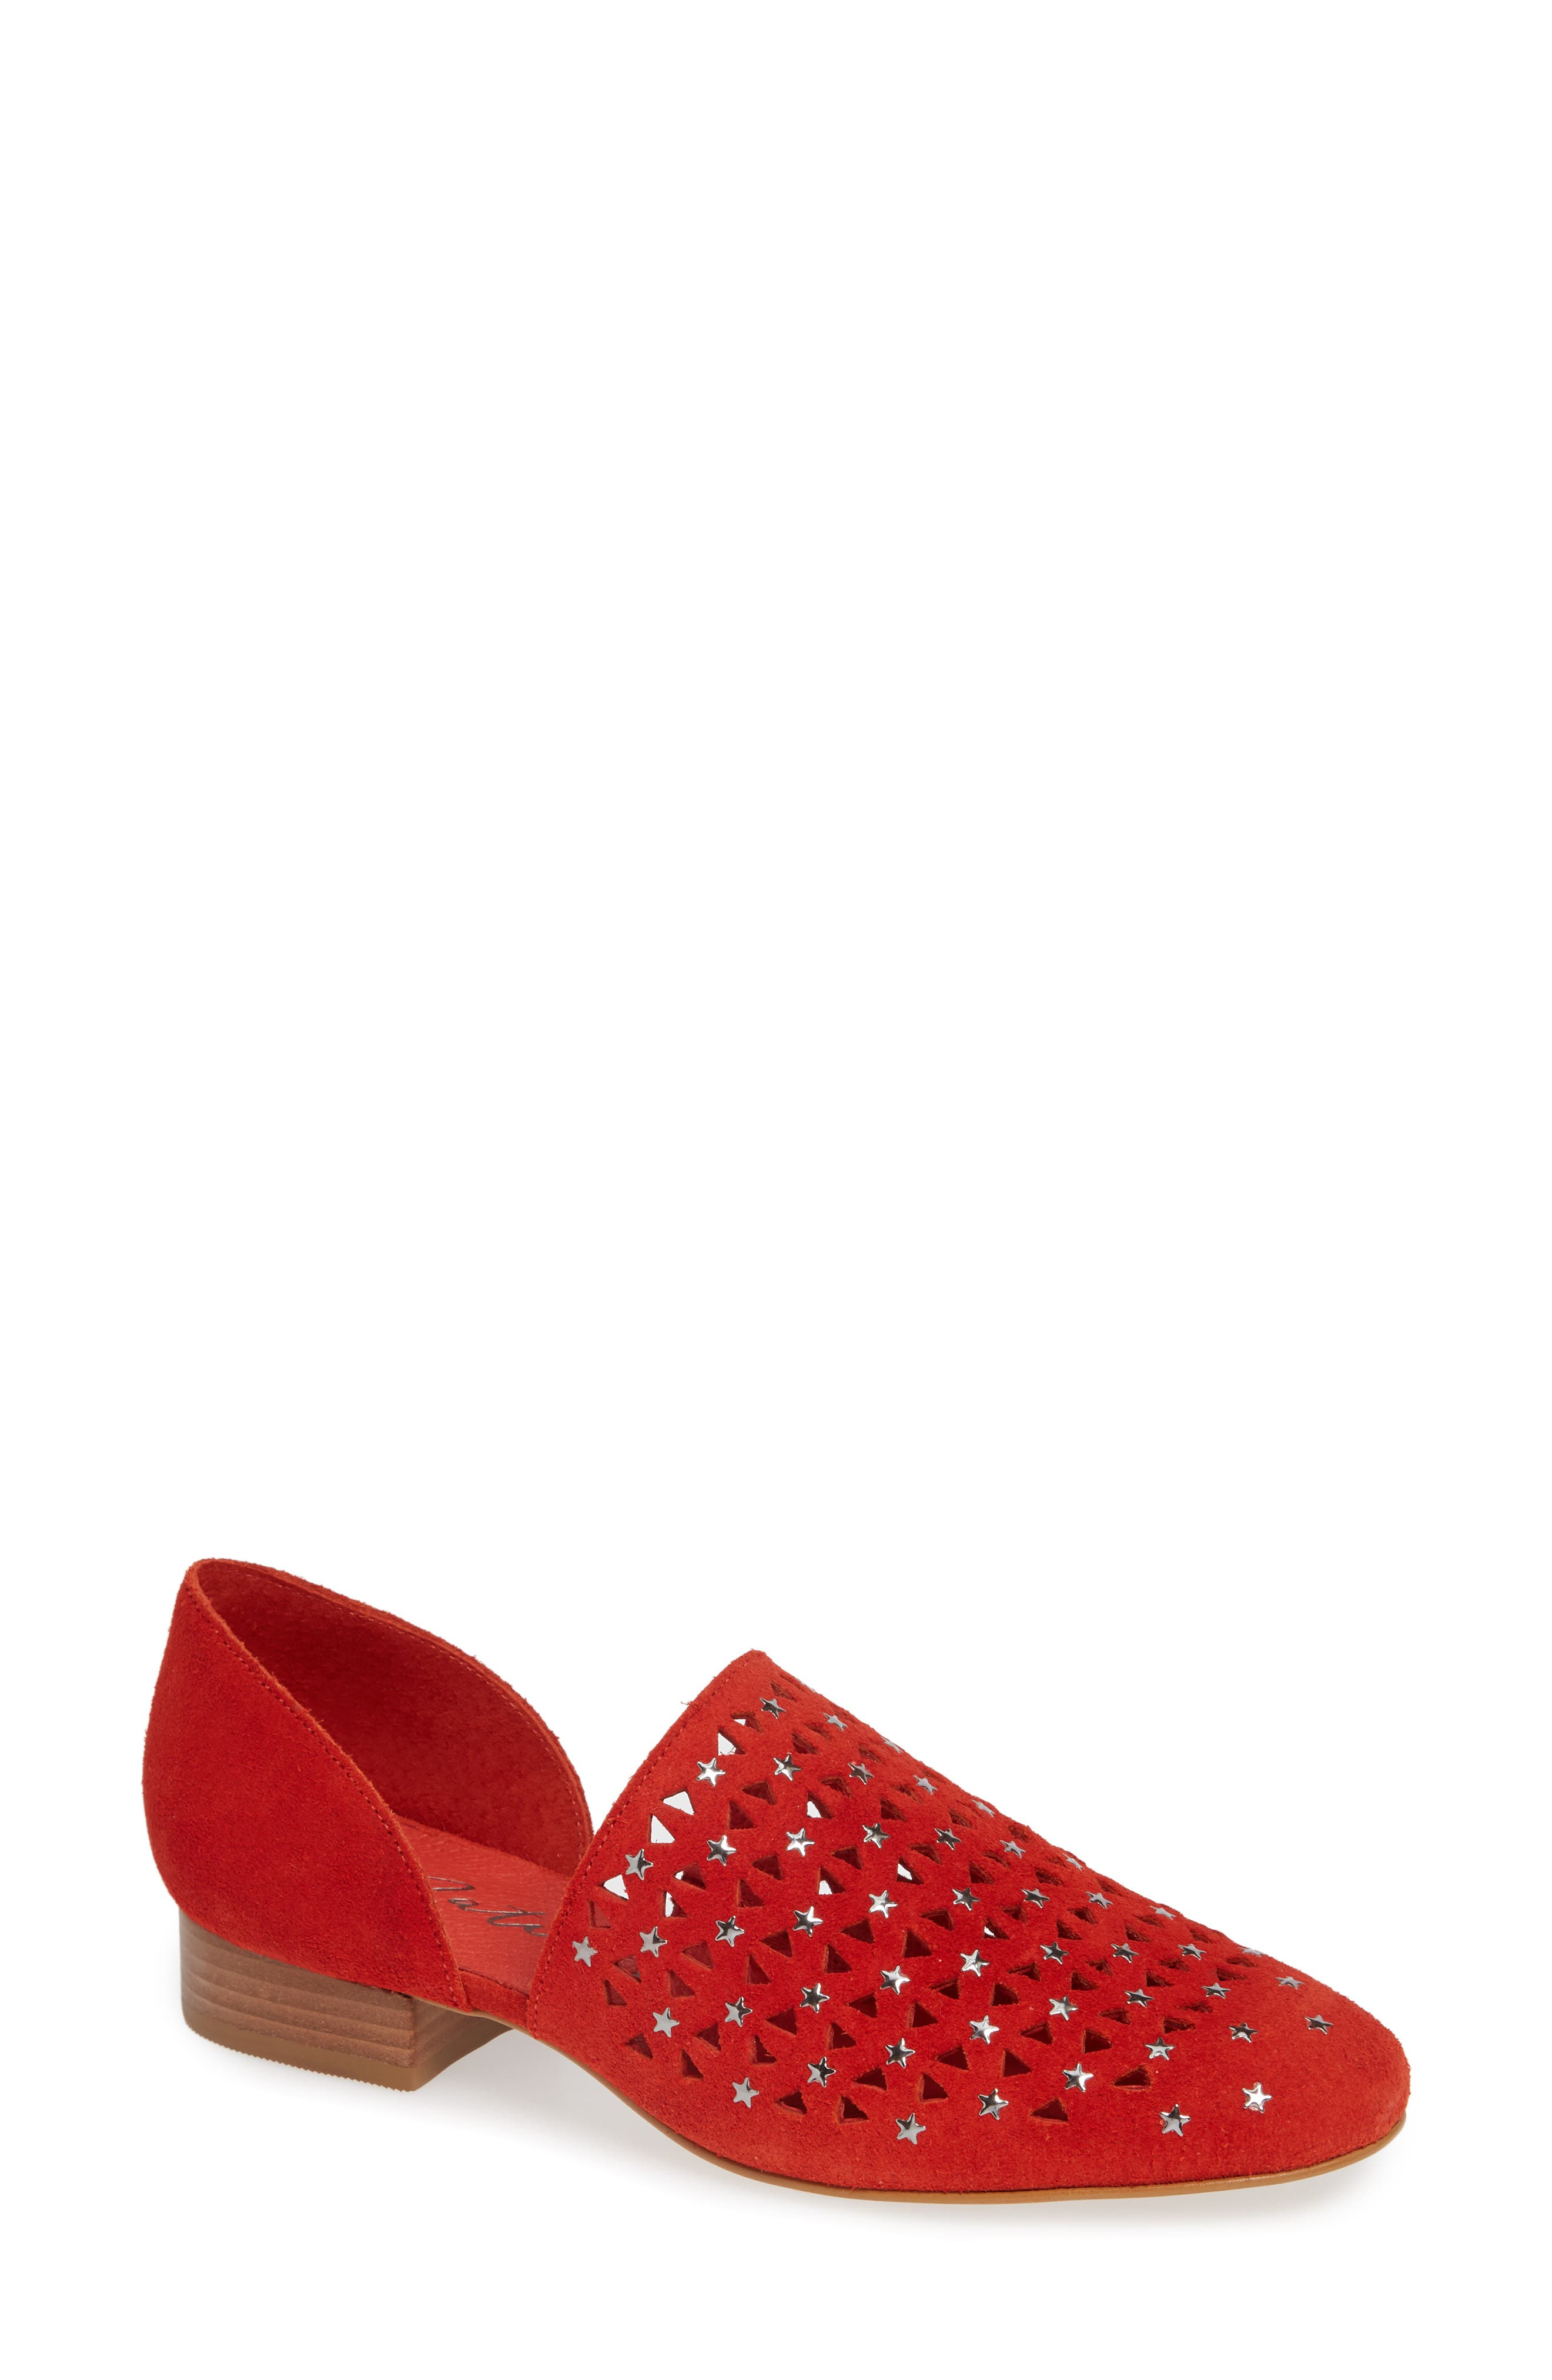 MATISSE Constellation D'Orsay Flat in Fire Suede